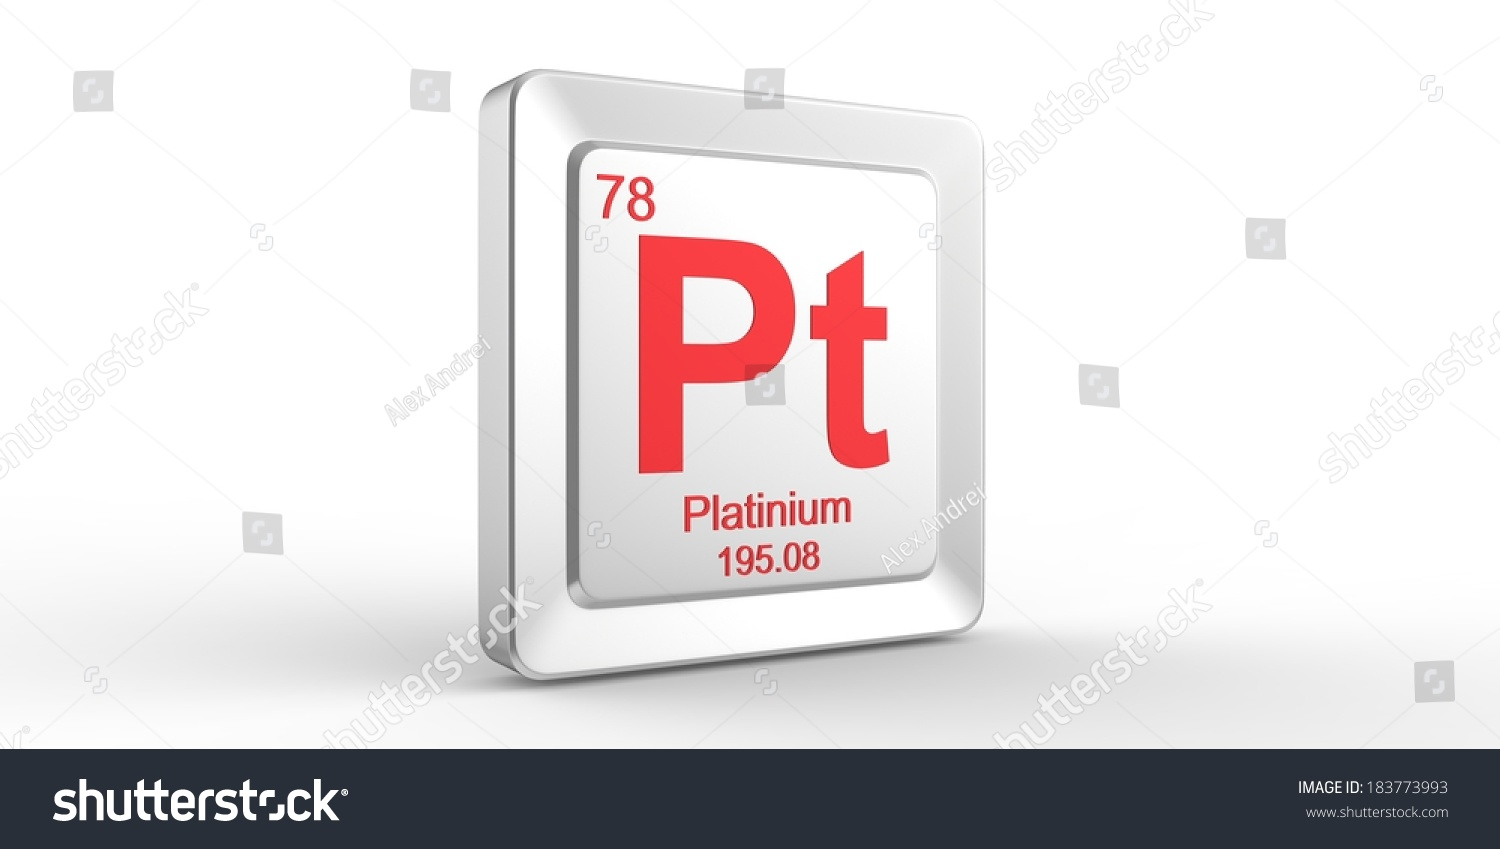 Pt symbol 78 material platinum chemical stock illustration pt symbol 78 material for platinum chemical element of the periodic table gamestrikefo Choice Image